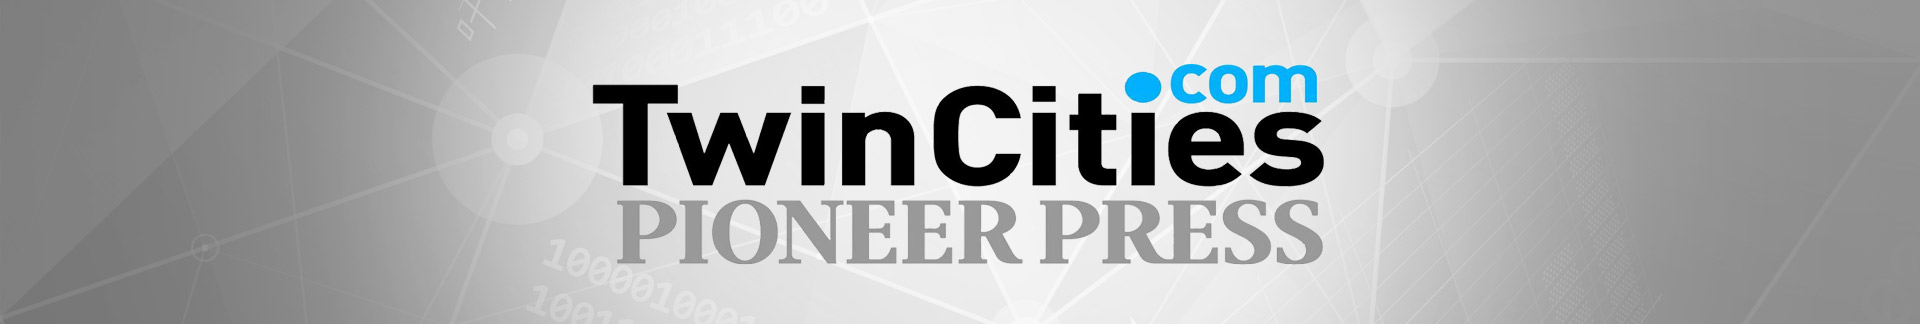 Twin Cities Pioneer Press news banner